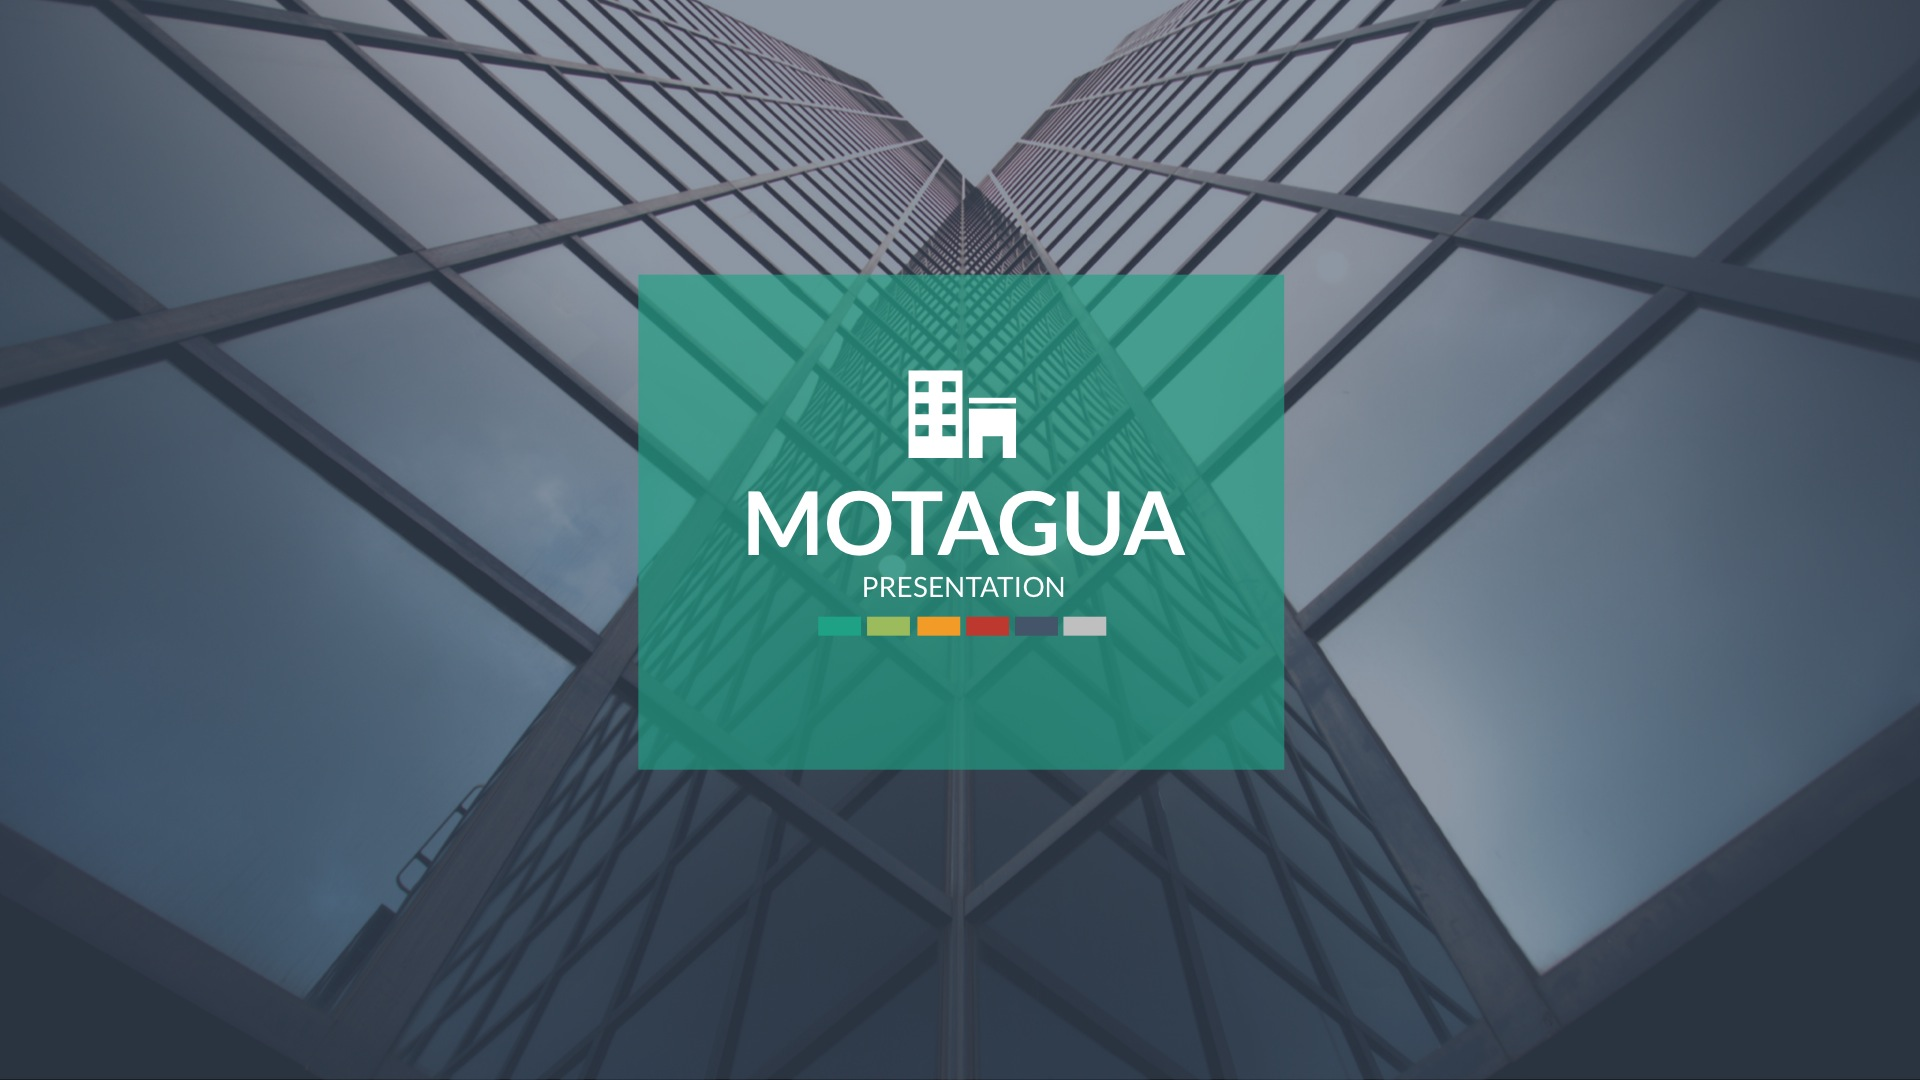 10 powerpoint business templates to wow your audience the multipurpose powerpoint business template from motagua flashek